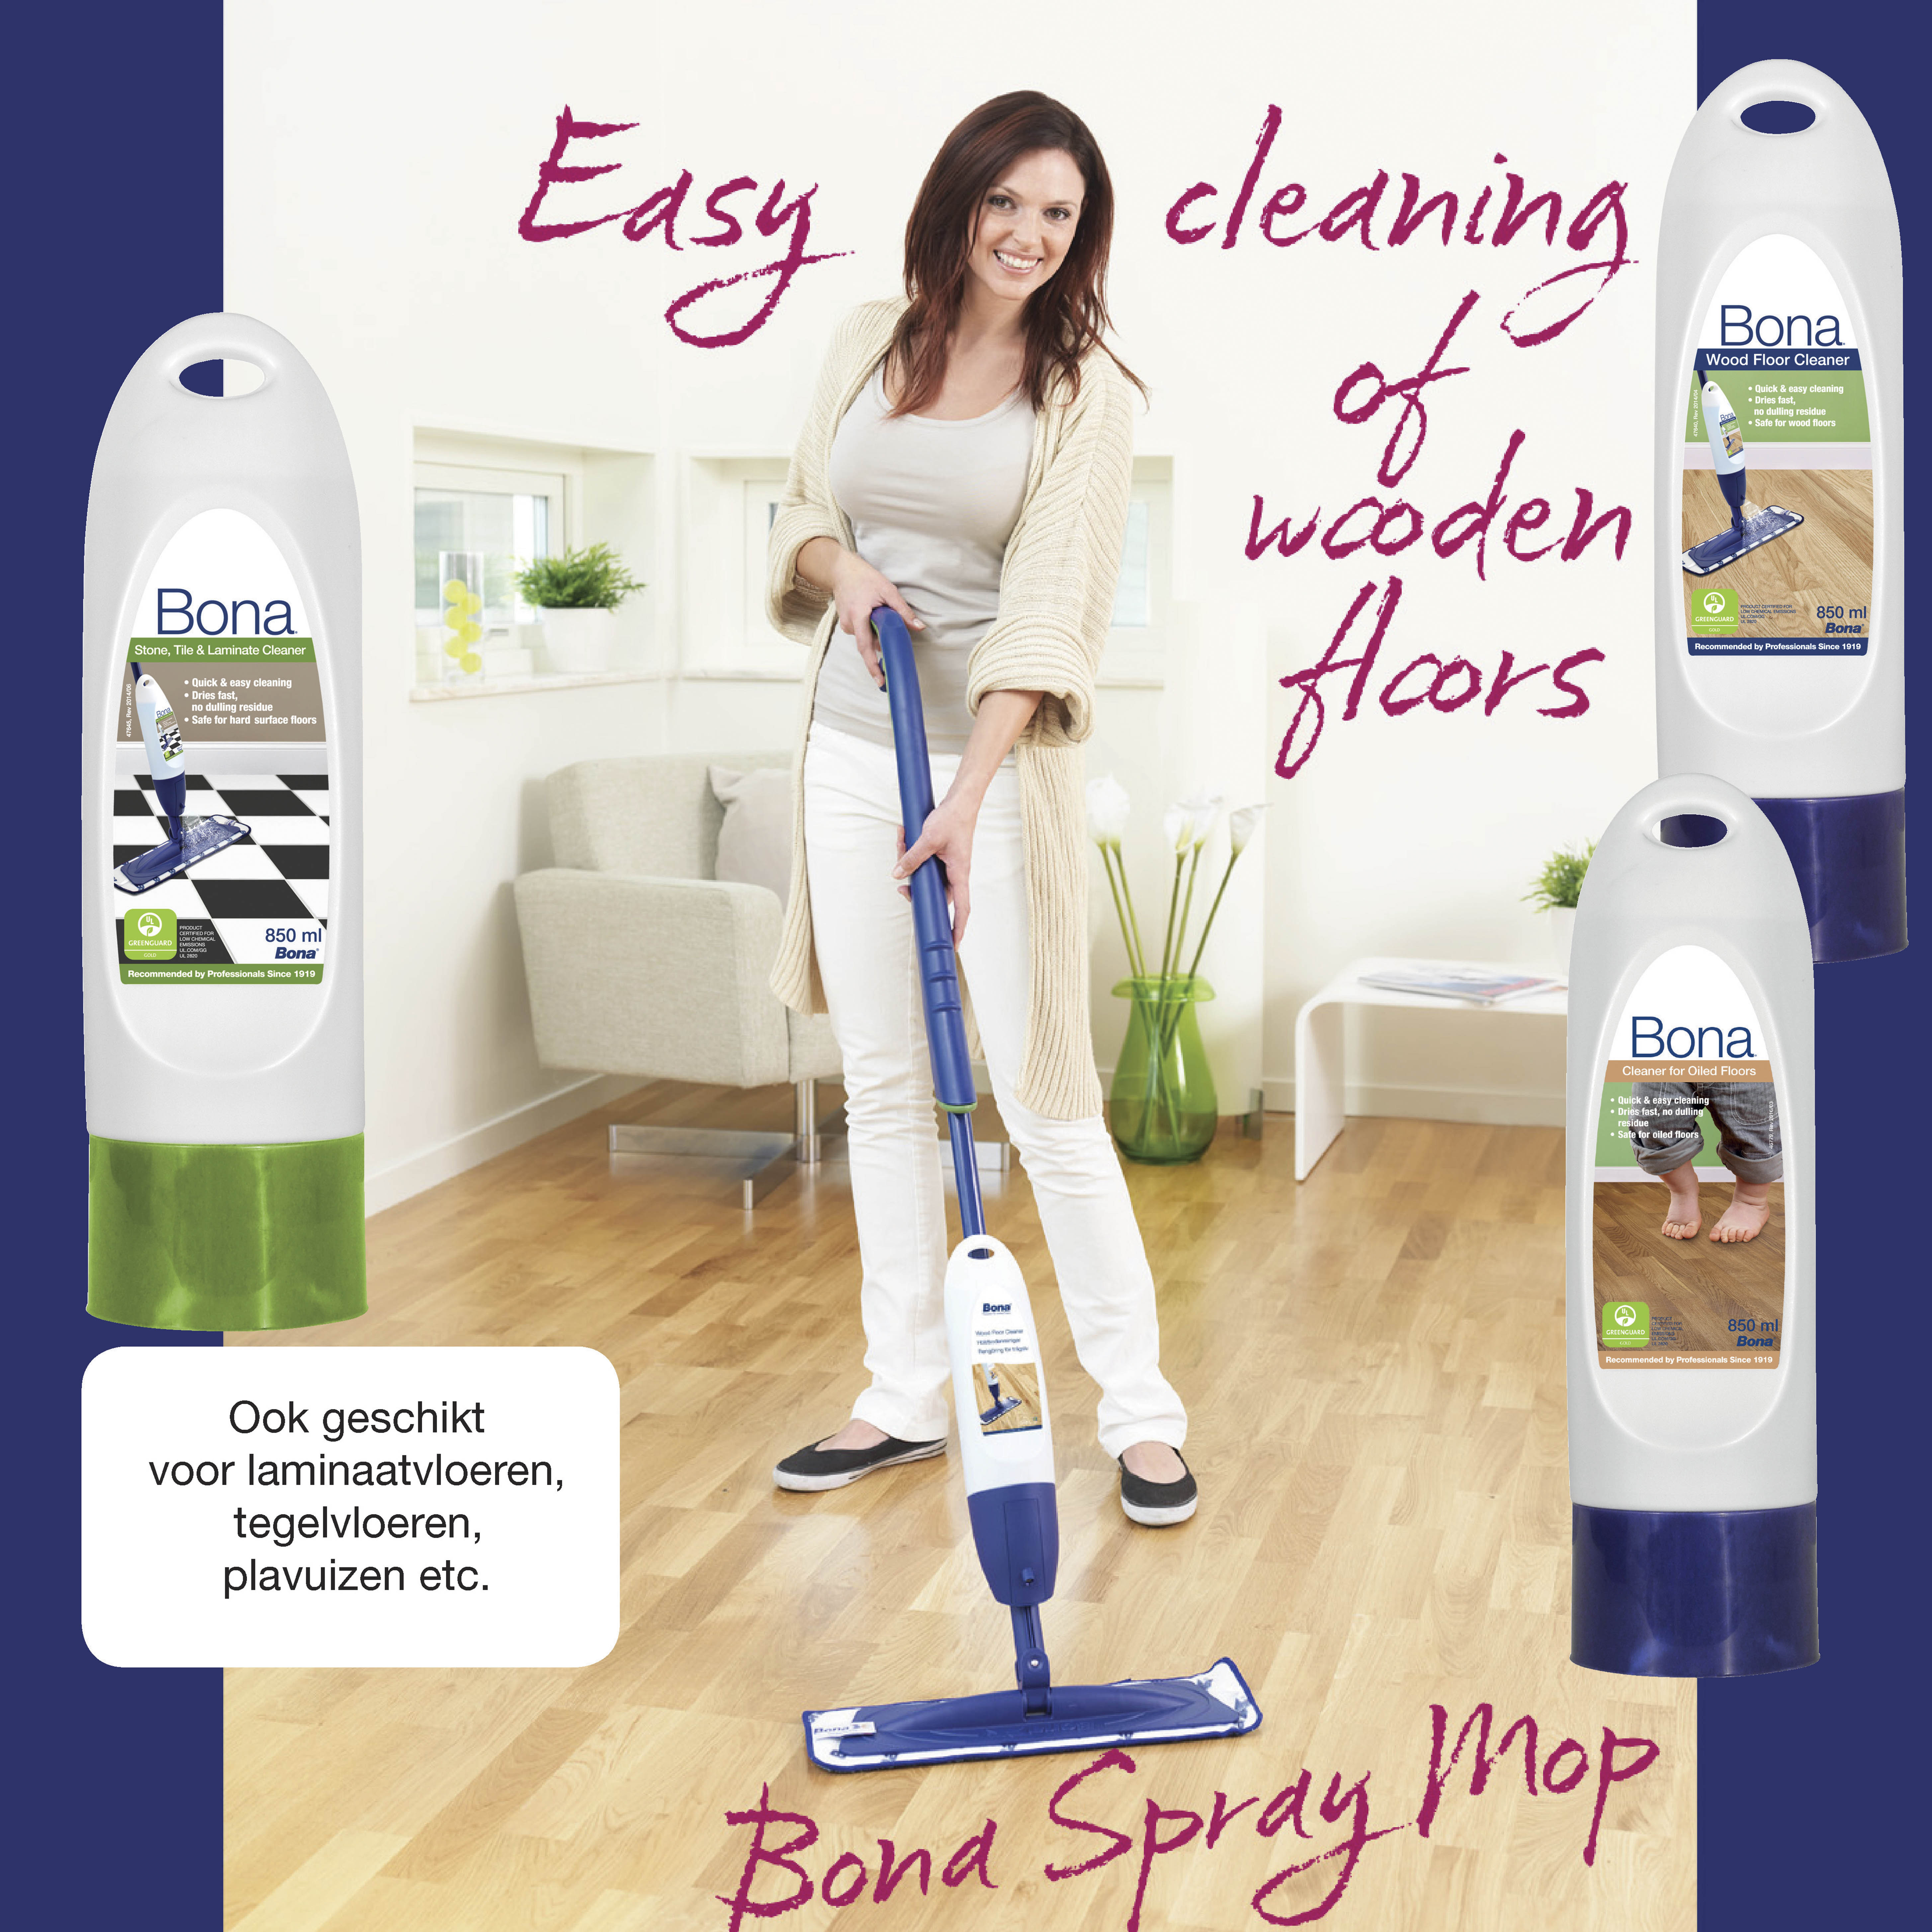 SprayMop2020/Bona_Spray_Mop-3.jpg